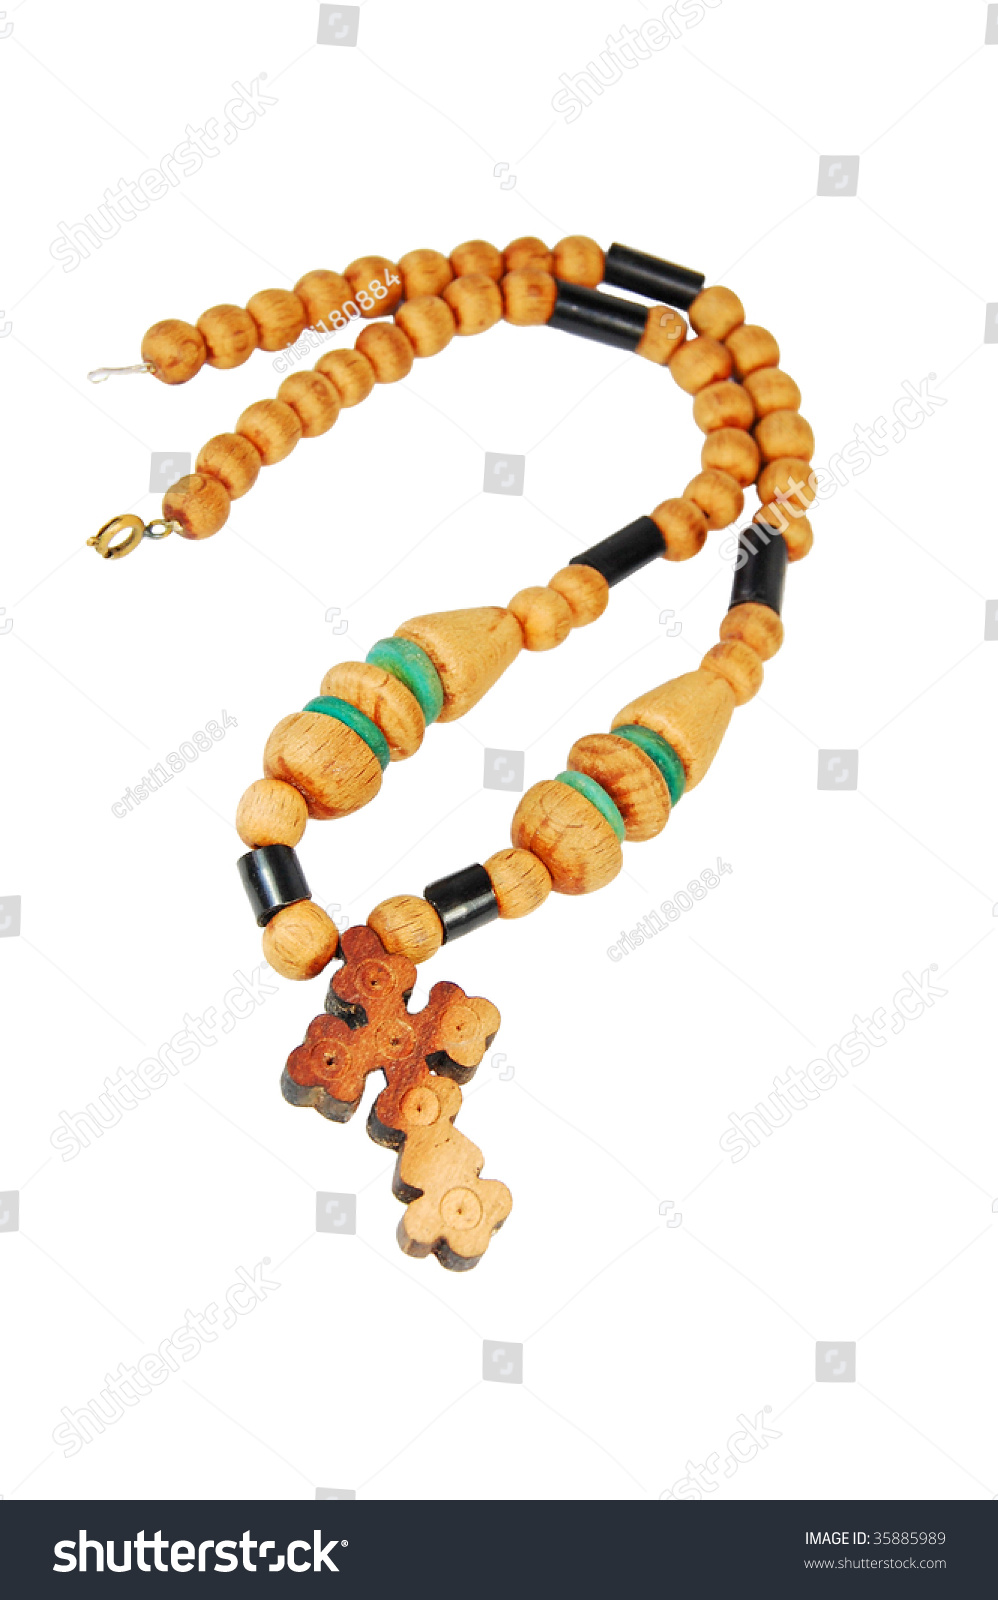 hight resolution of wooden rosary